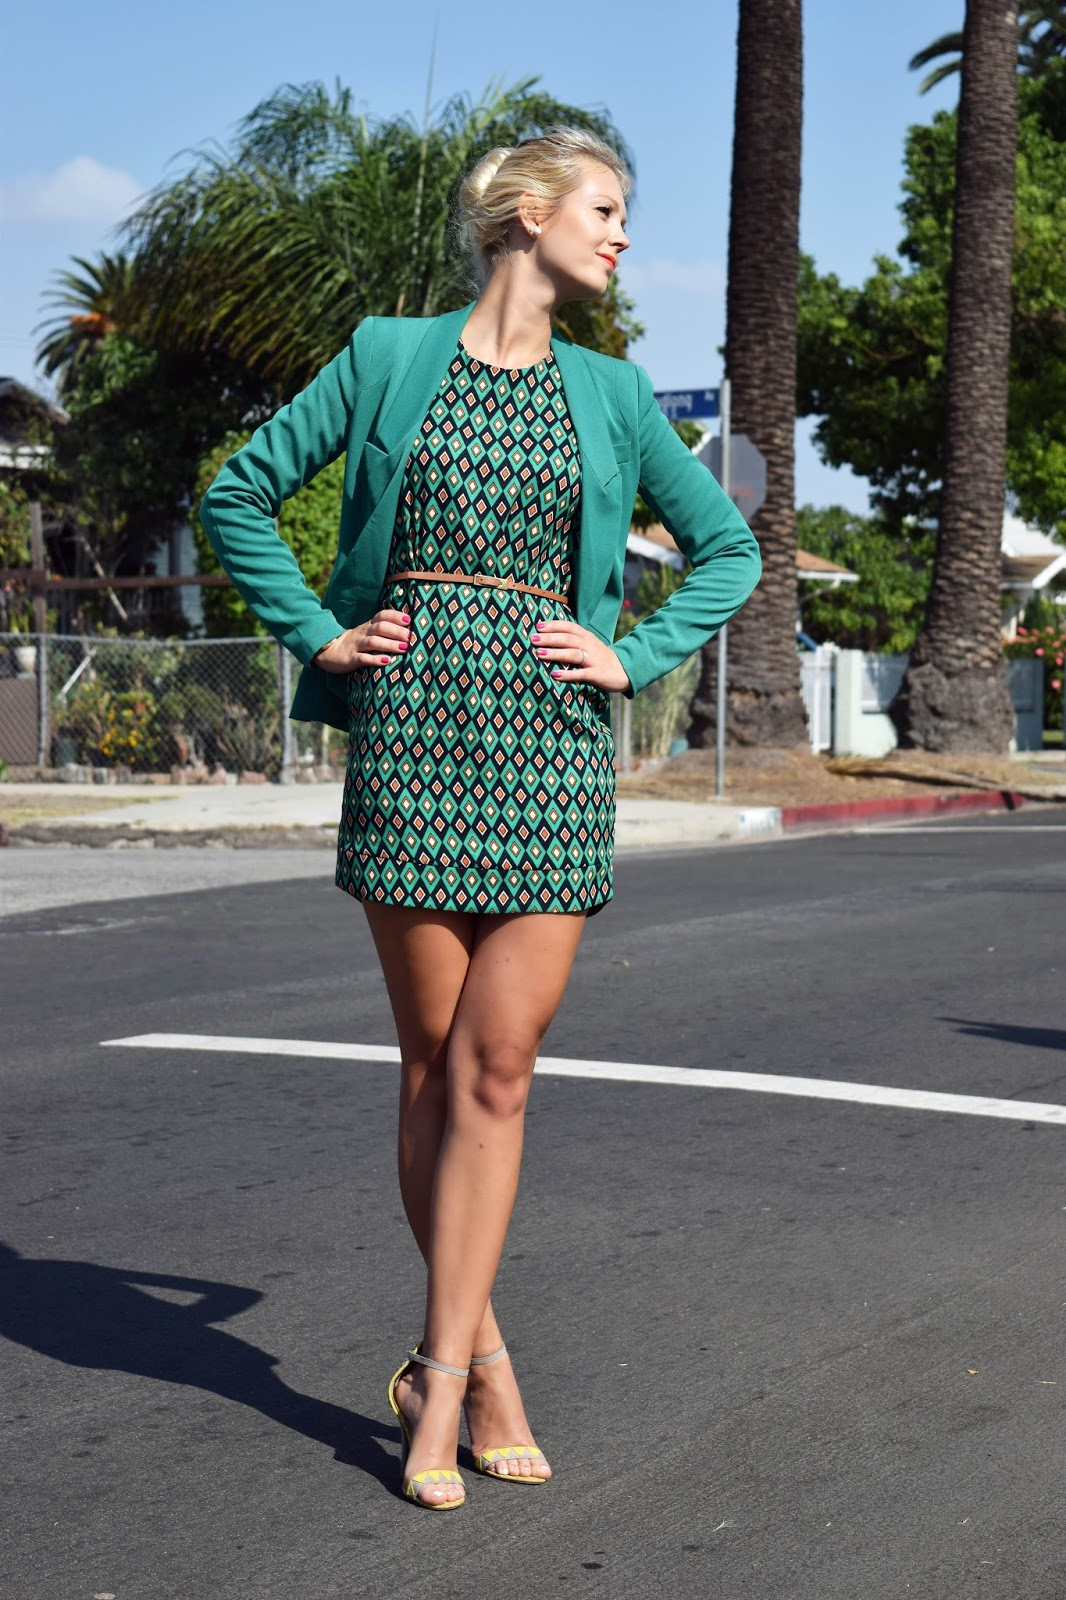 Green dress, green blazer, Chinese laundry heels, stiletto sandals, diamond pattern, pattern dress